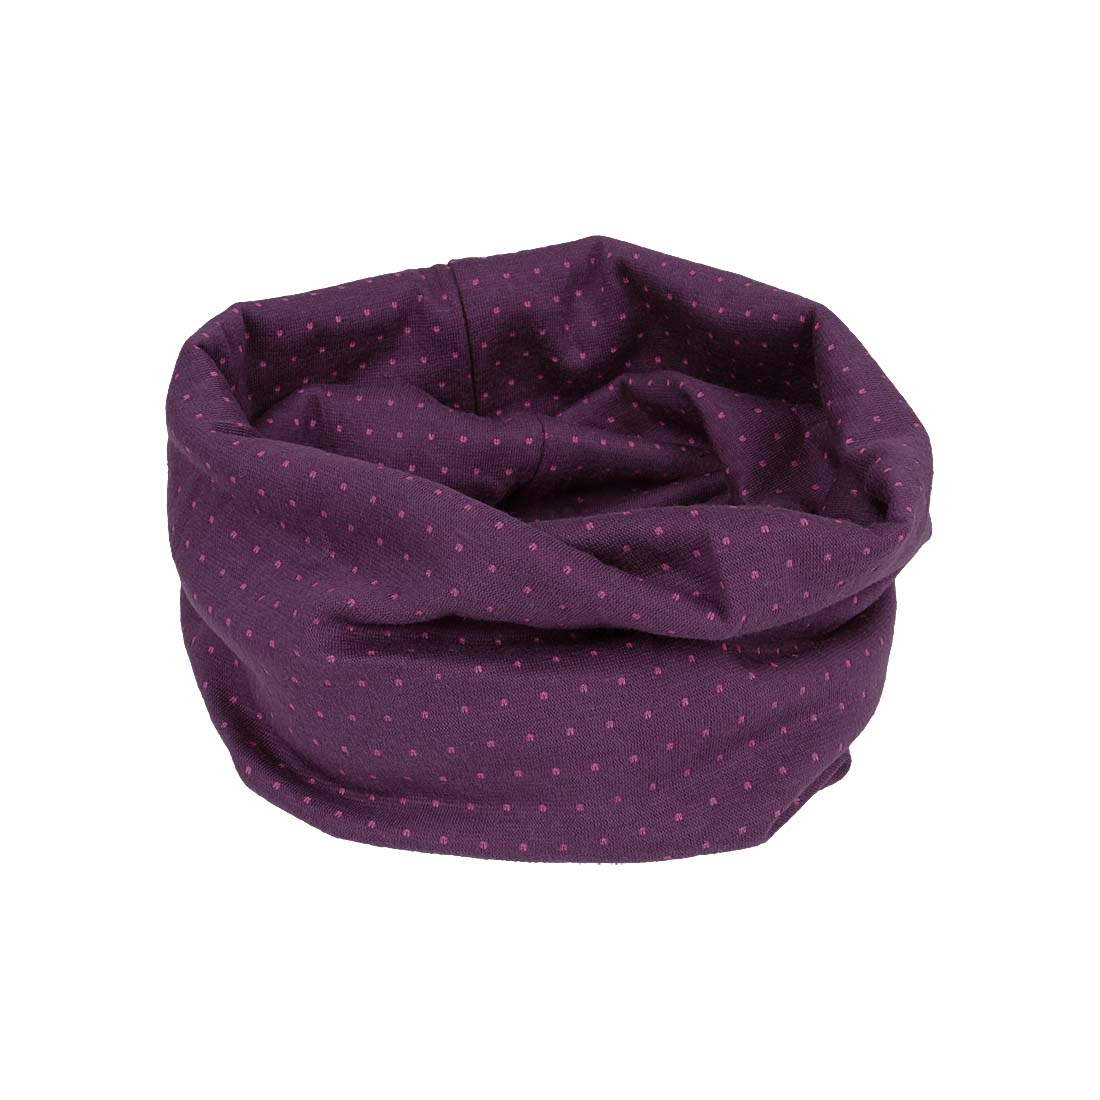 b.m.c BMC Fashion Multi Use Tube Headband Bandanna Beanie Face Mask Neck Warmer Scarf at Sears.com